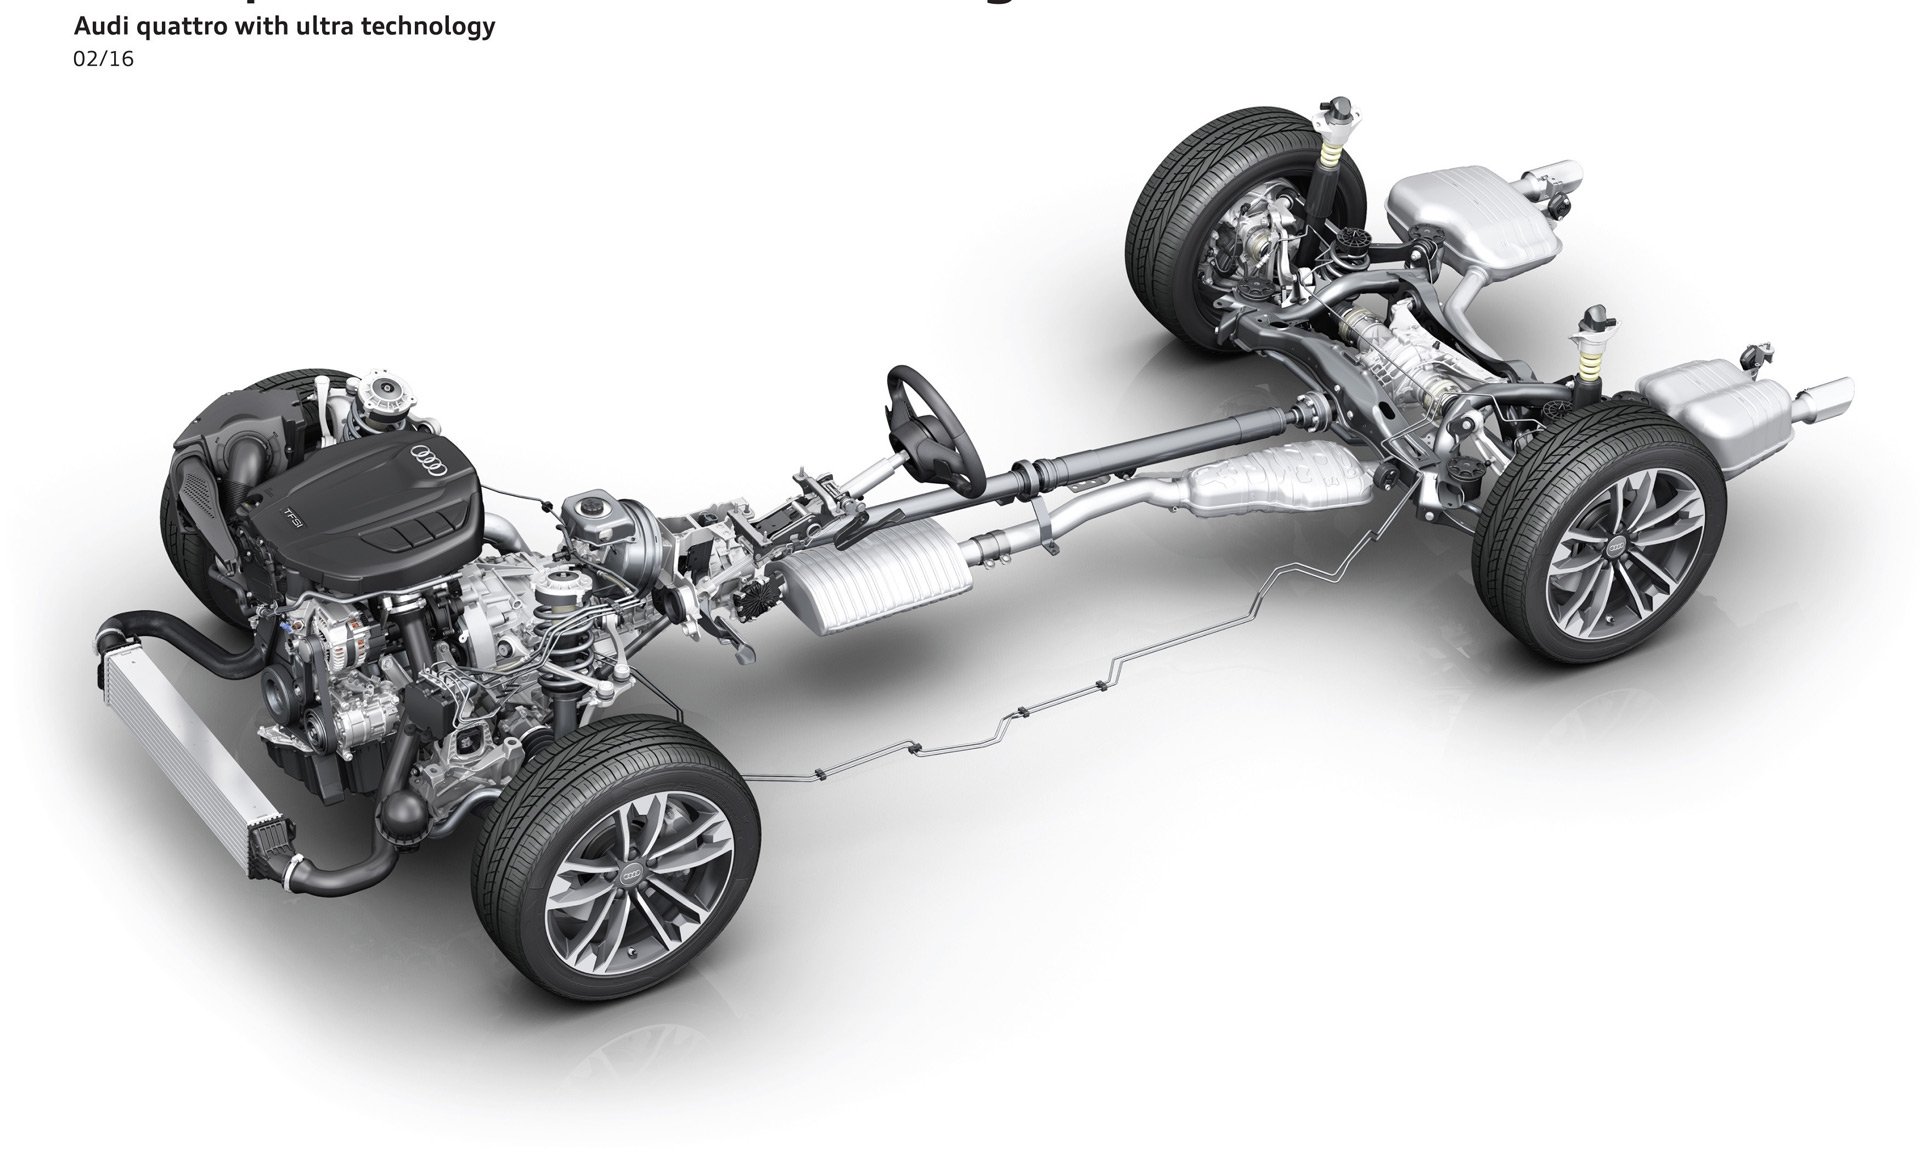 vw awd diagram audi unveils more efficient quattro ultra all-wheel-drive ...